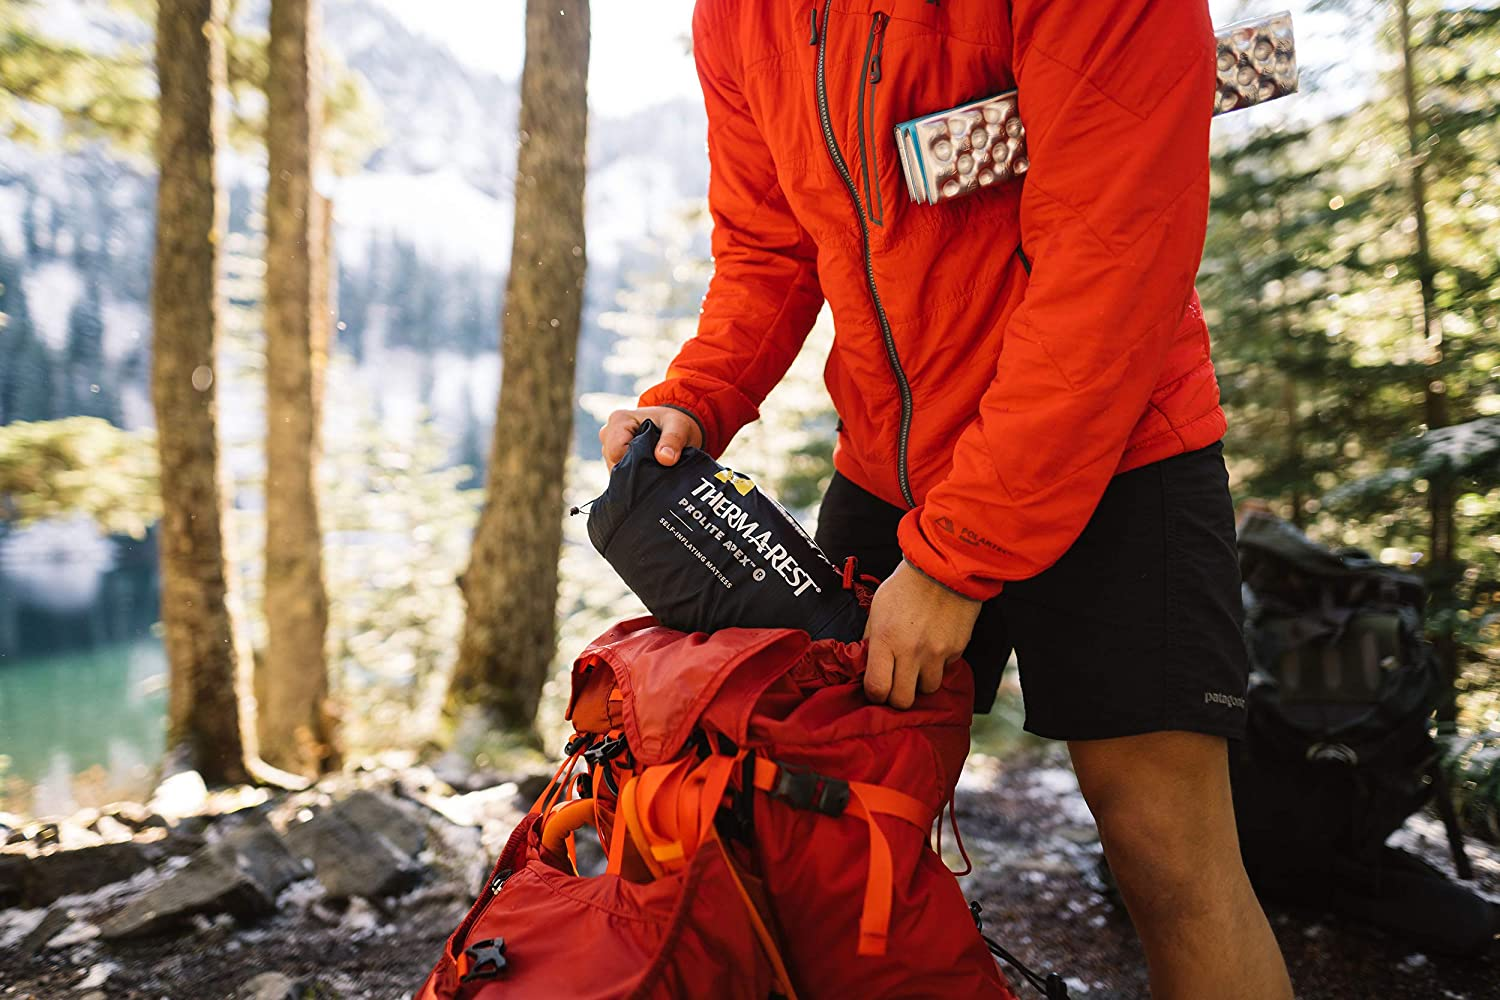 Therm-a-Rest Prolite Apex Ultraleichtes selbstaufblasendes Backpacking Pad mit WingLock Ventil